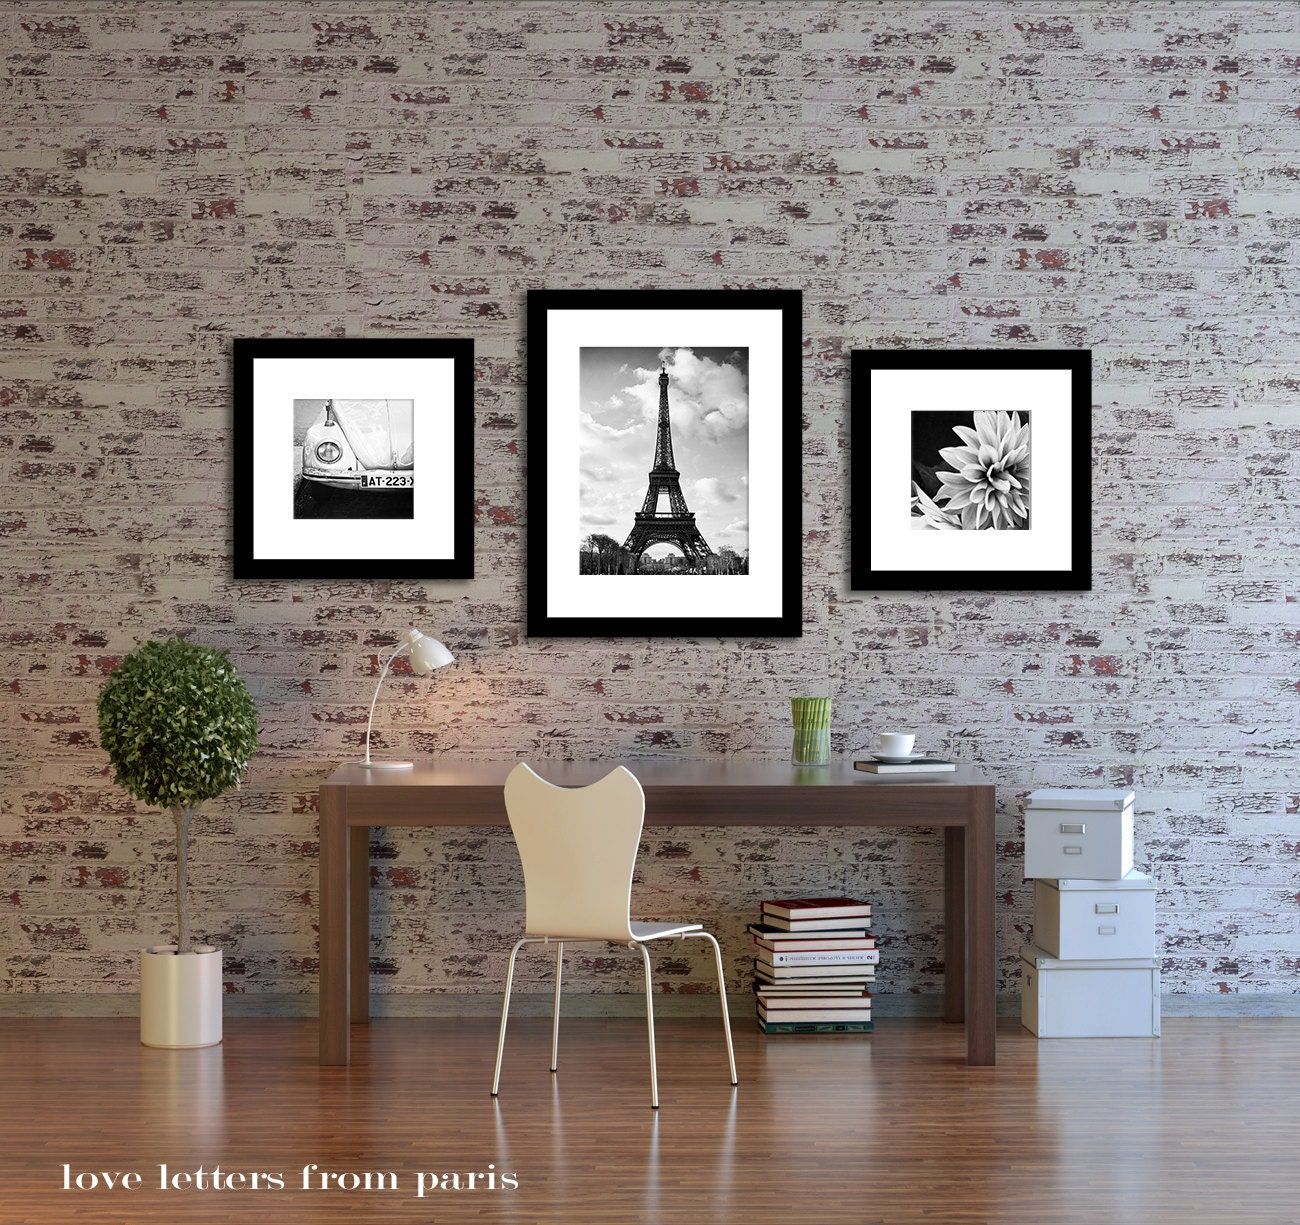 Paris photograph home decor paris wall art paris decor for Decorative home